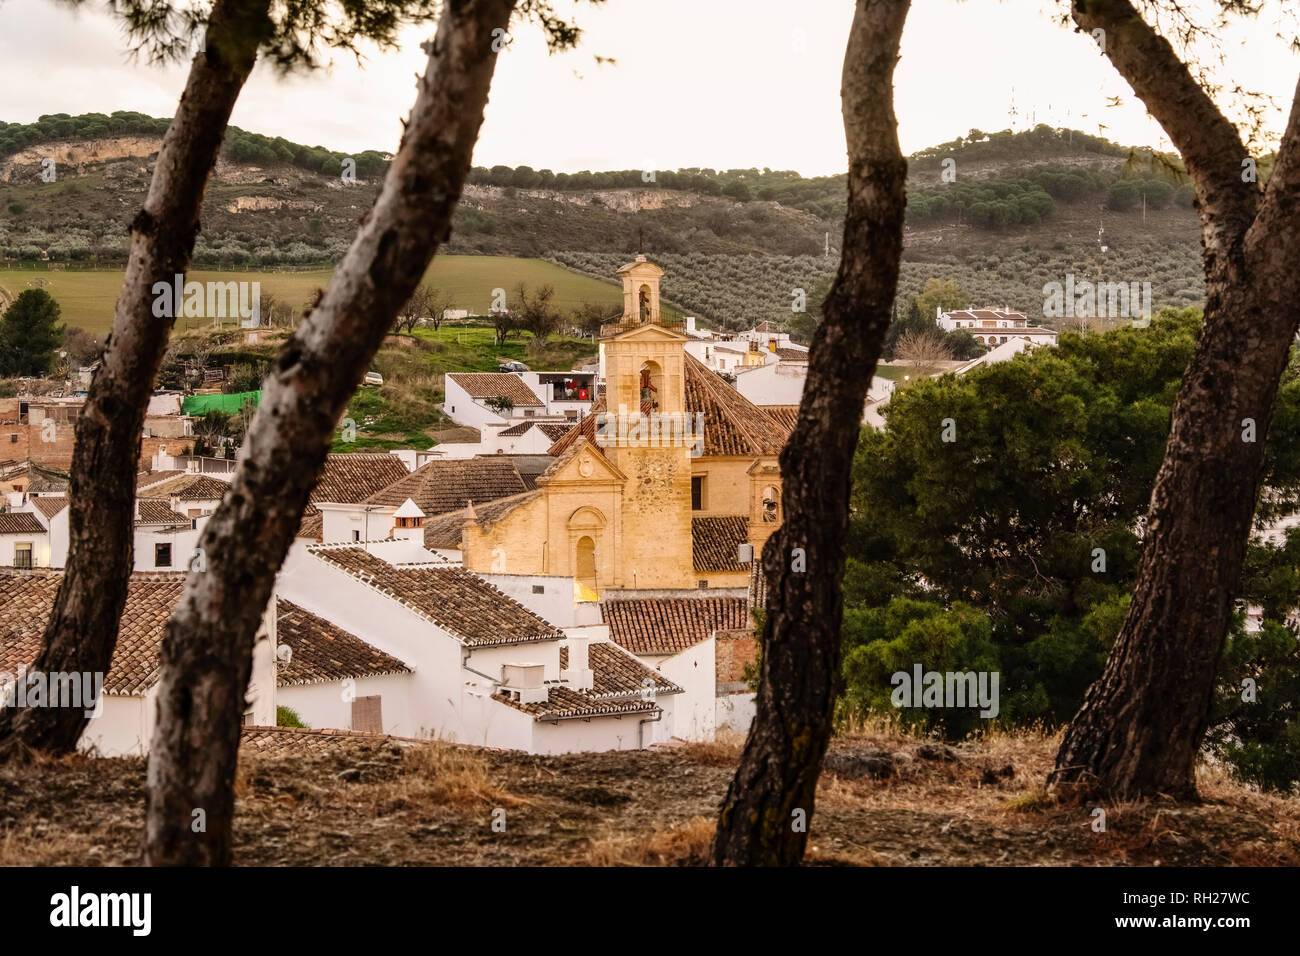 Church Santa María de Jesus. Old town monumental city of Antequera, Malaga province. Andalusia, Southern Spain. Europe Stock Photo